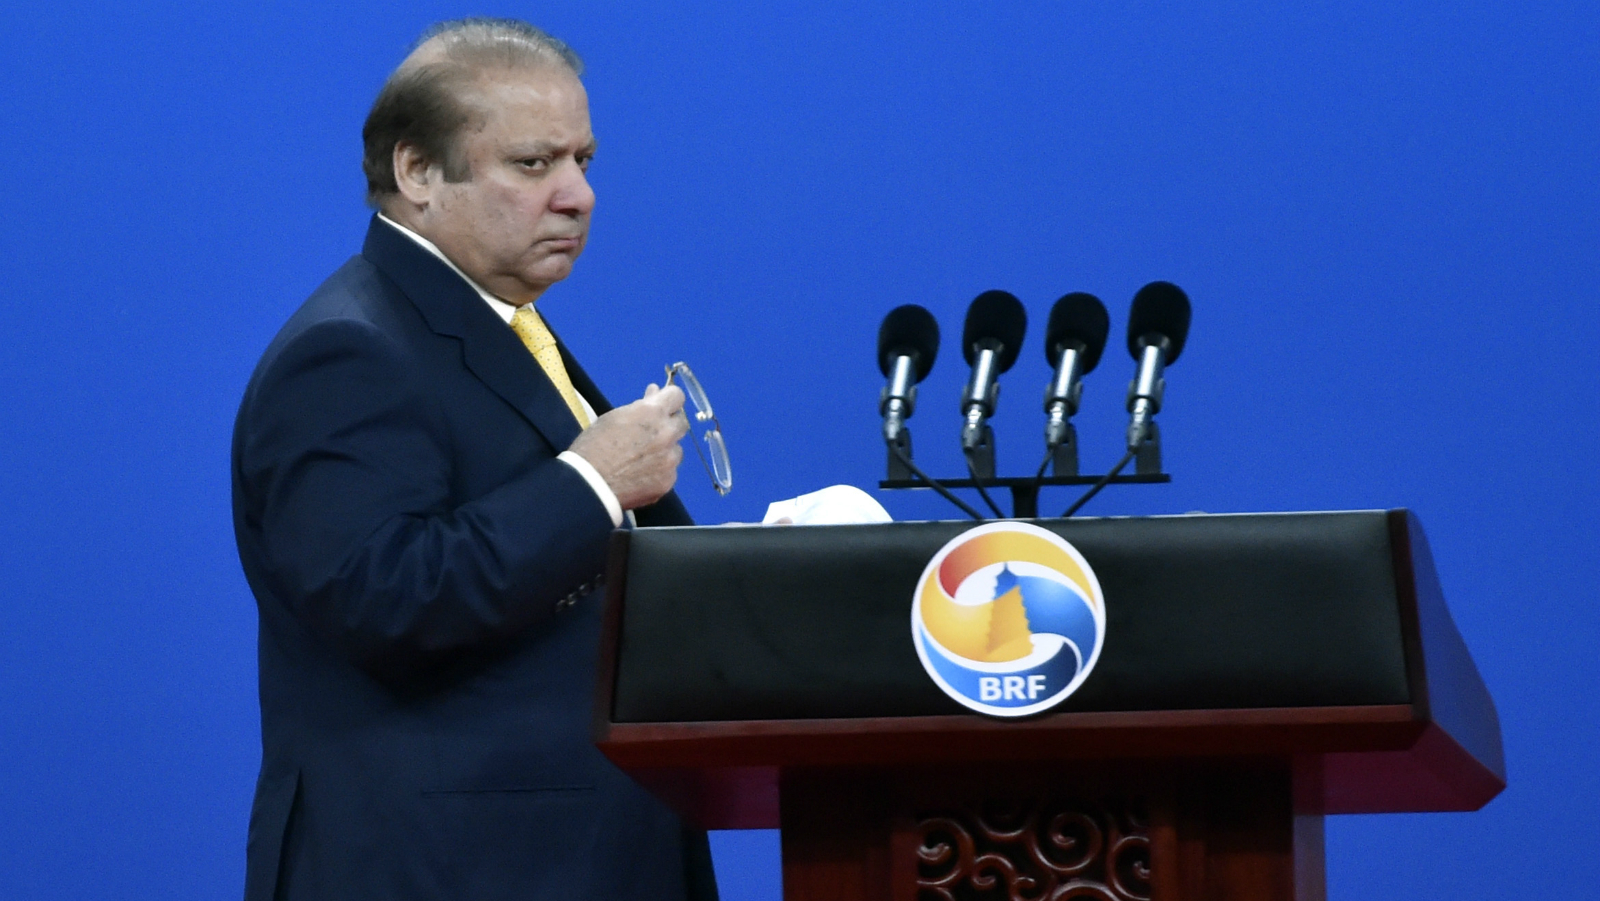 Pakistani Prime Minister Nawaz Sharif delivers a speech during the Plenary Session of High-Level Dialogue, at the Belt and Road Forum in Beijing, China May 14, 2017. The forum runs from 14 to 15 May.